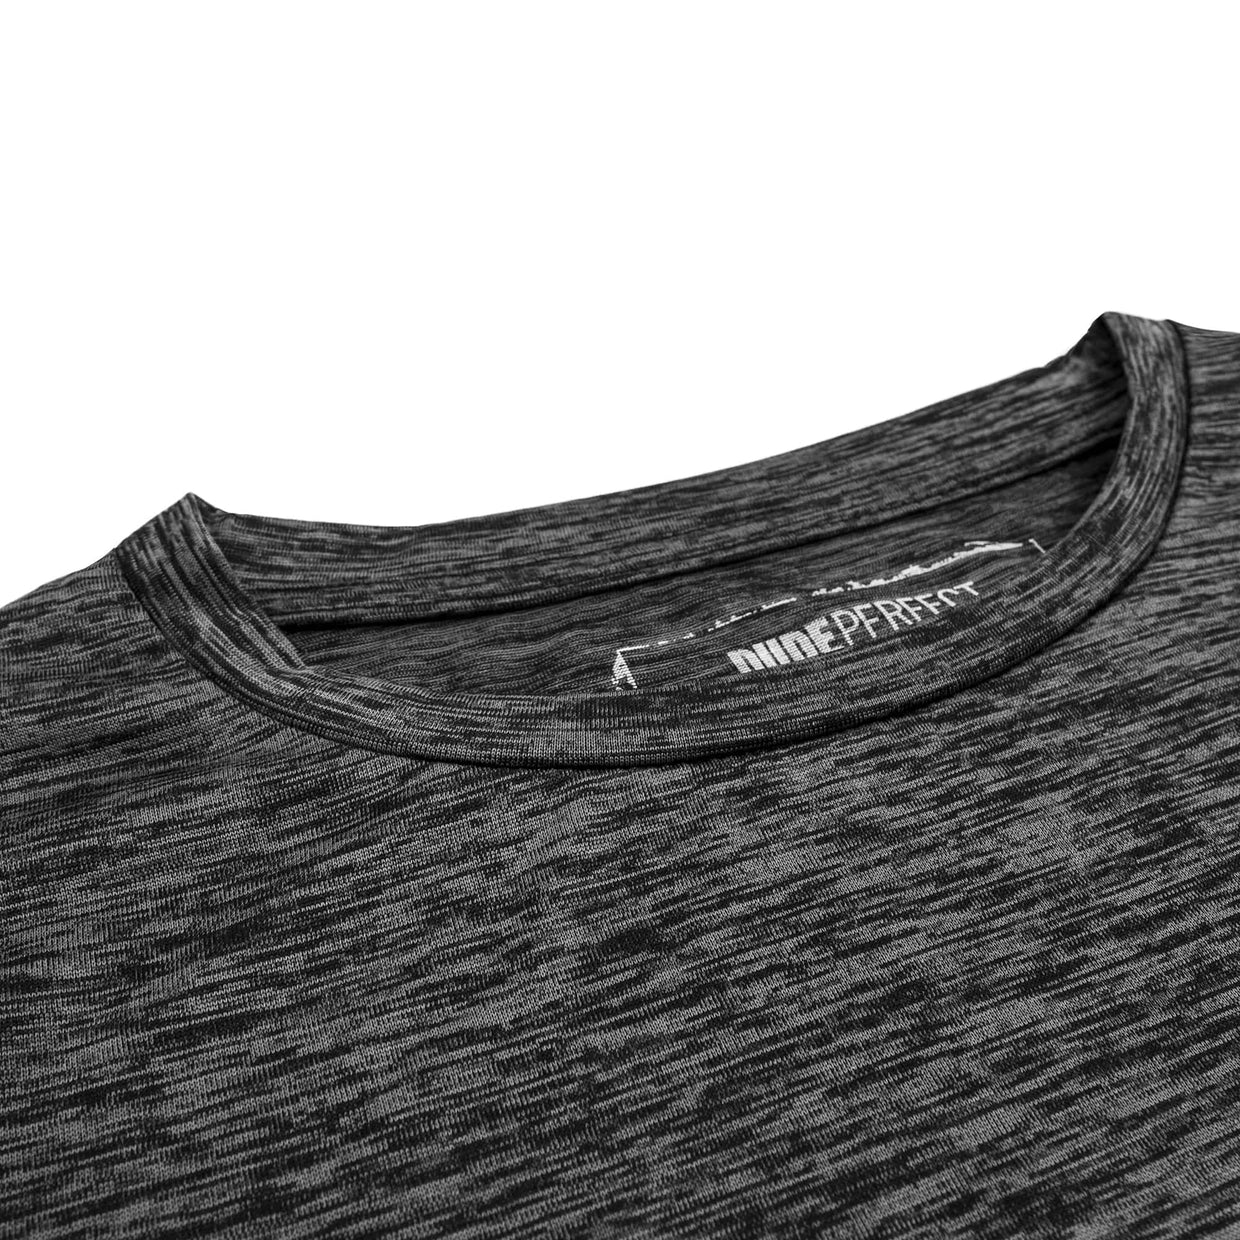 Battles Combat 2 Performance Tee // Charcoal Heather